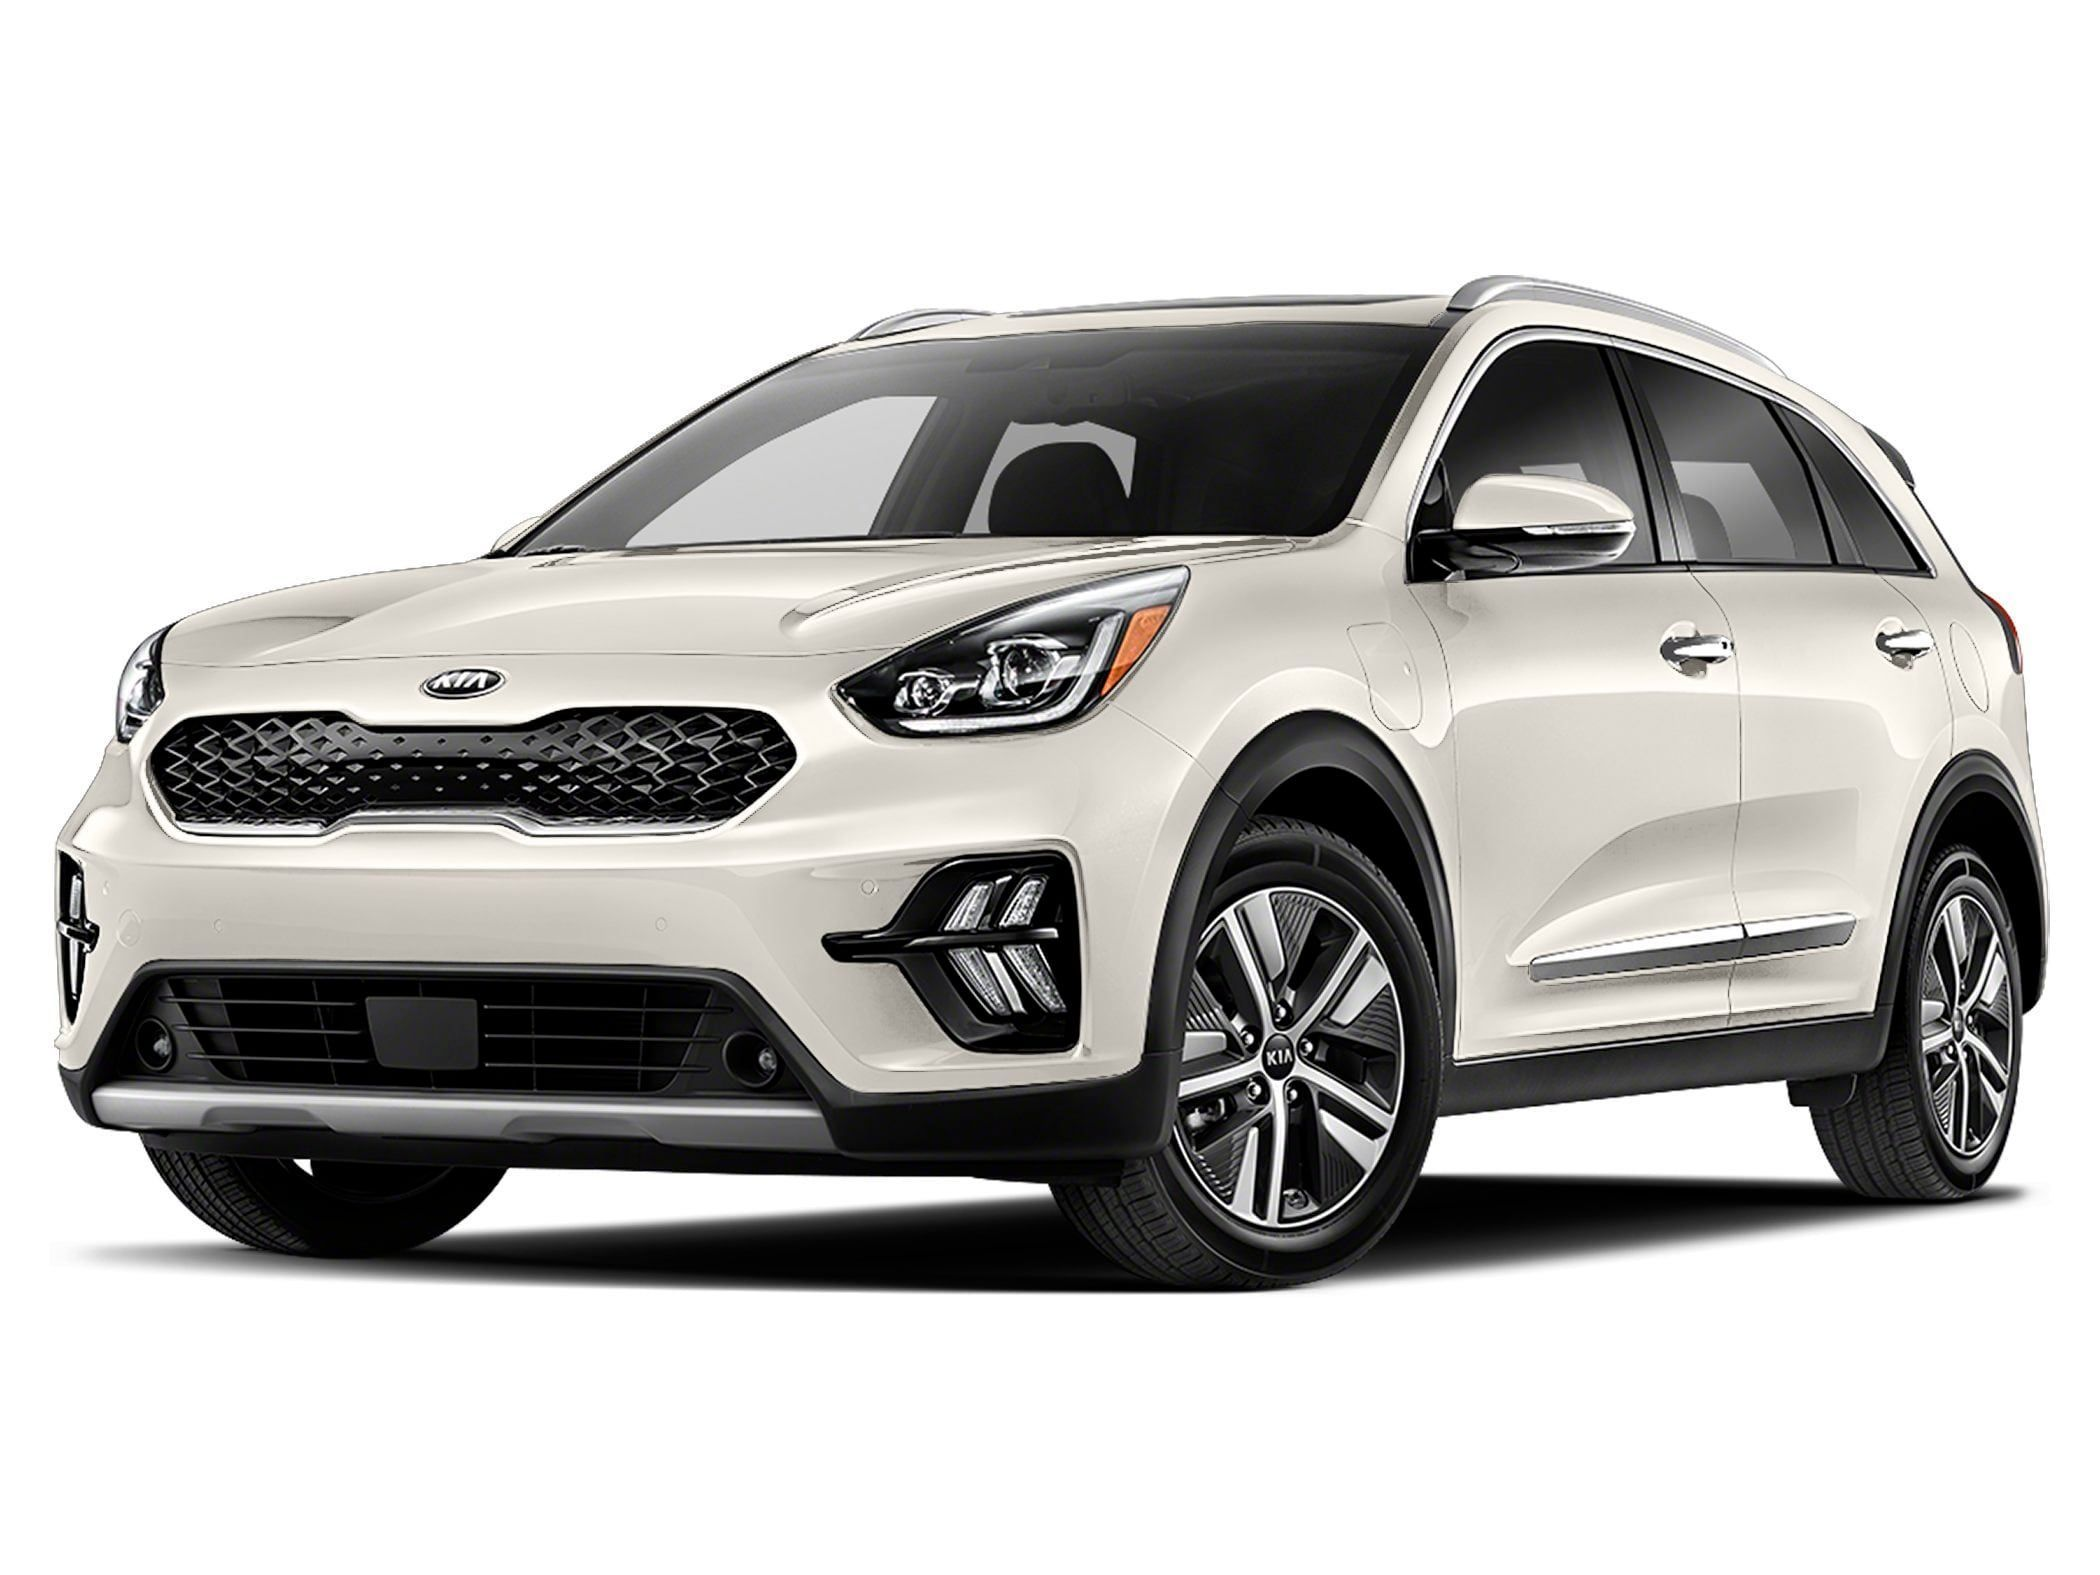 New 2020 Kia Niro Plug-In Hybrid